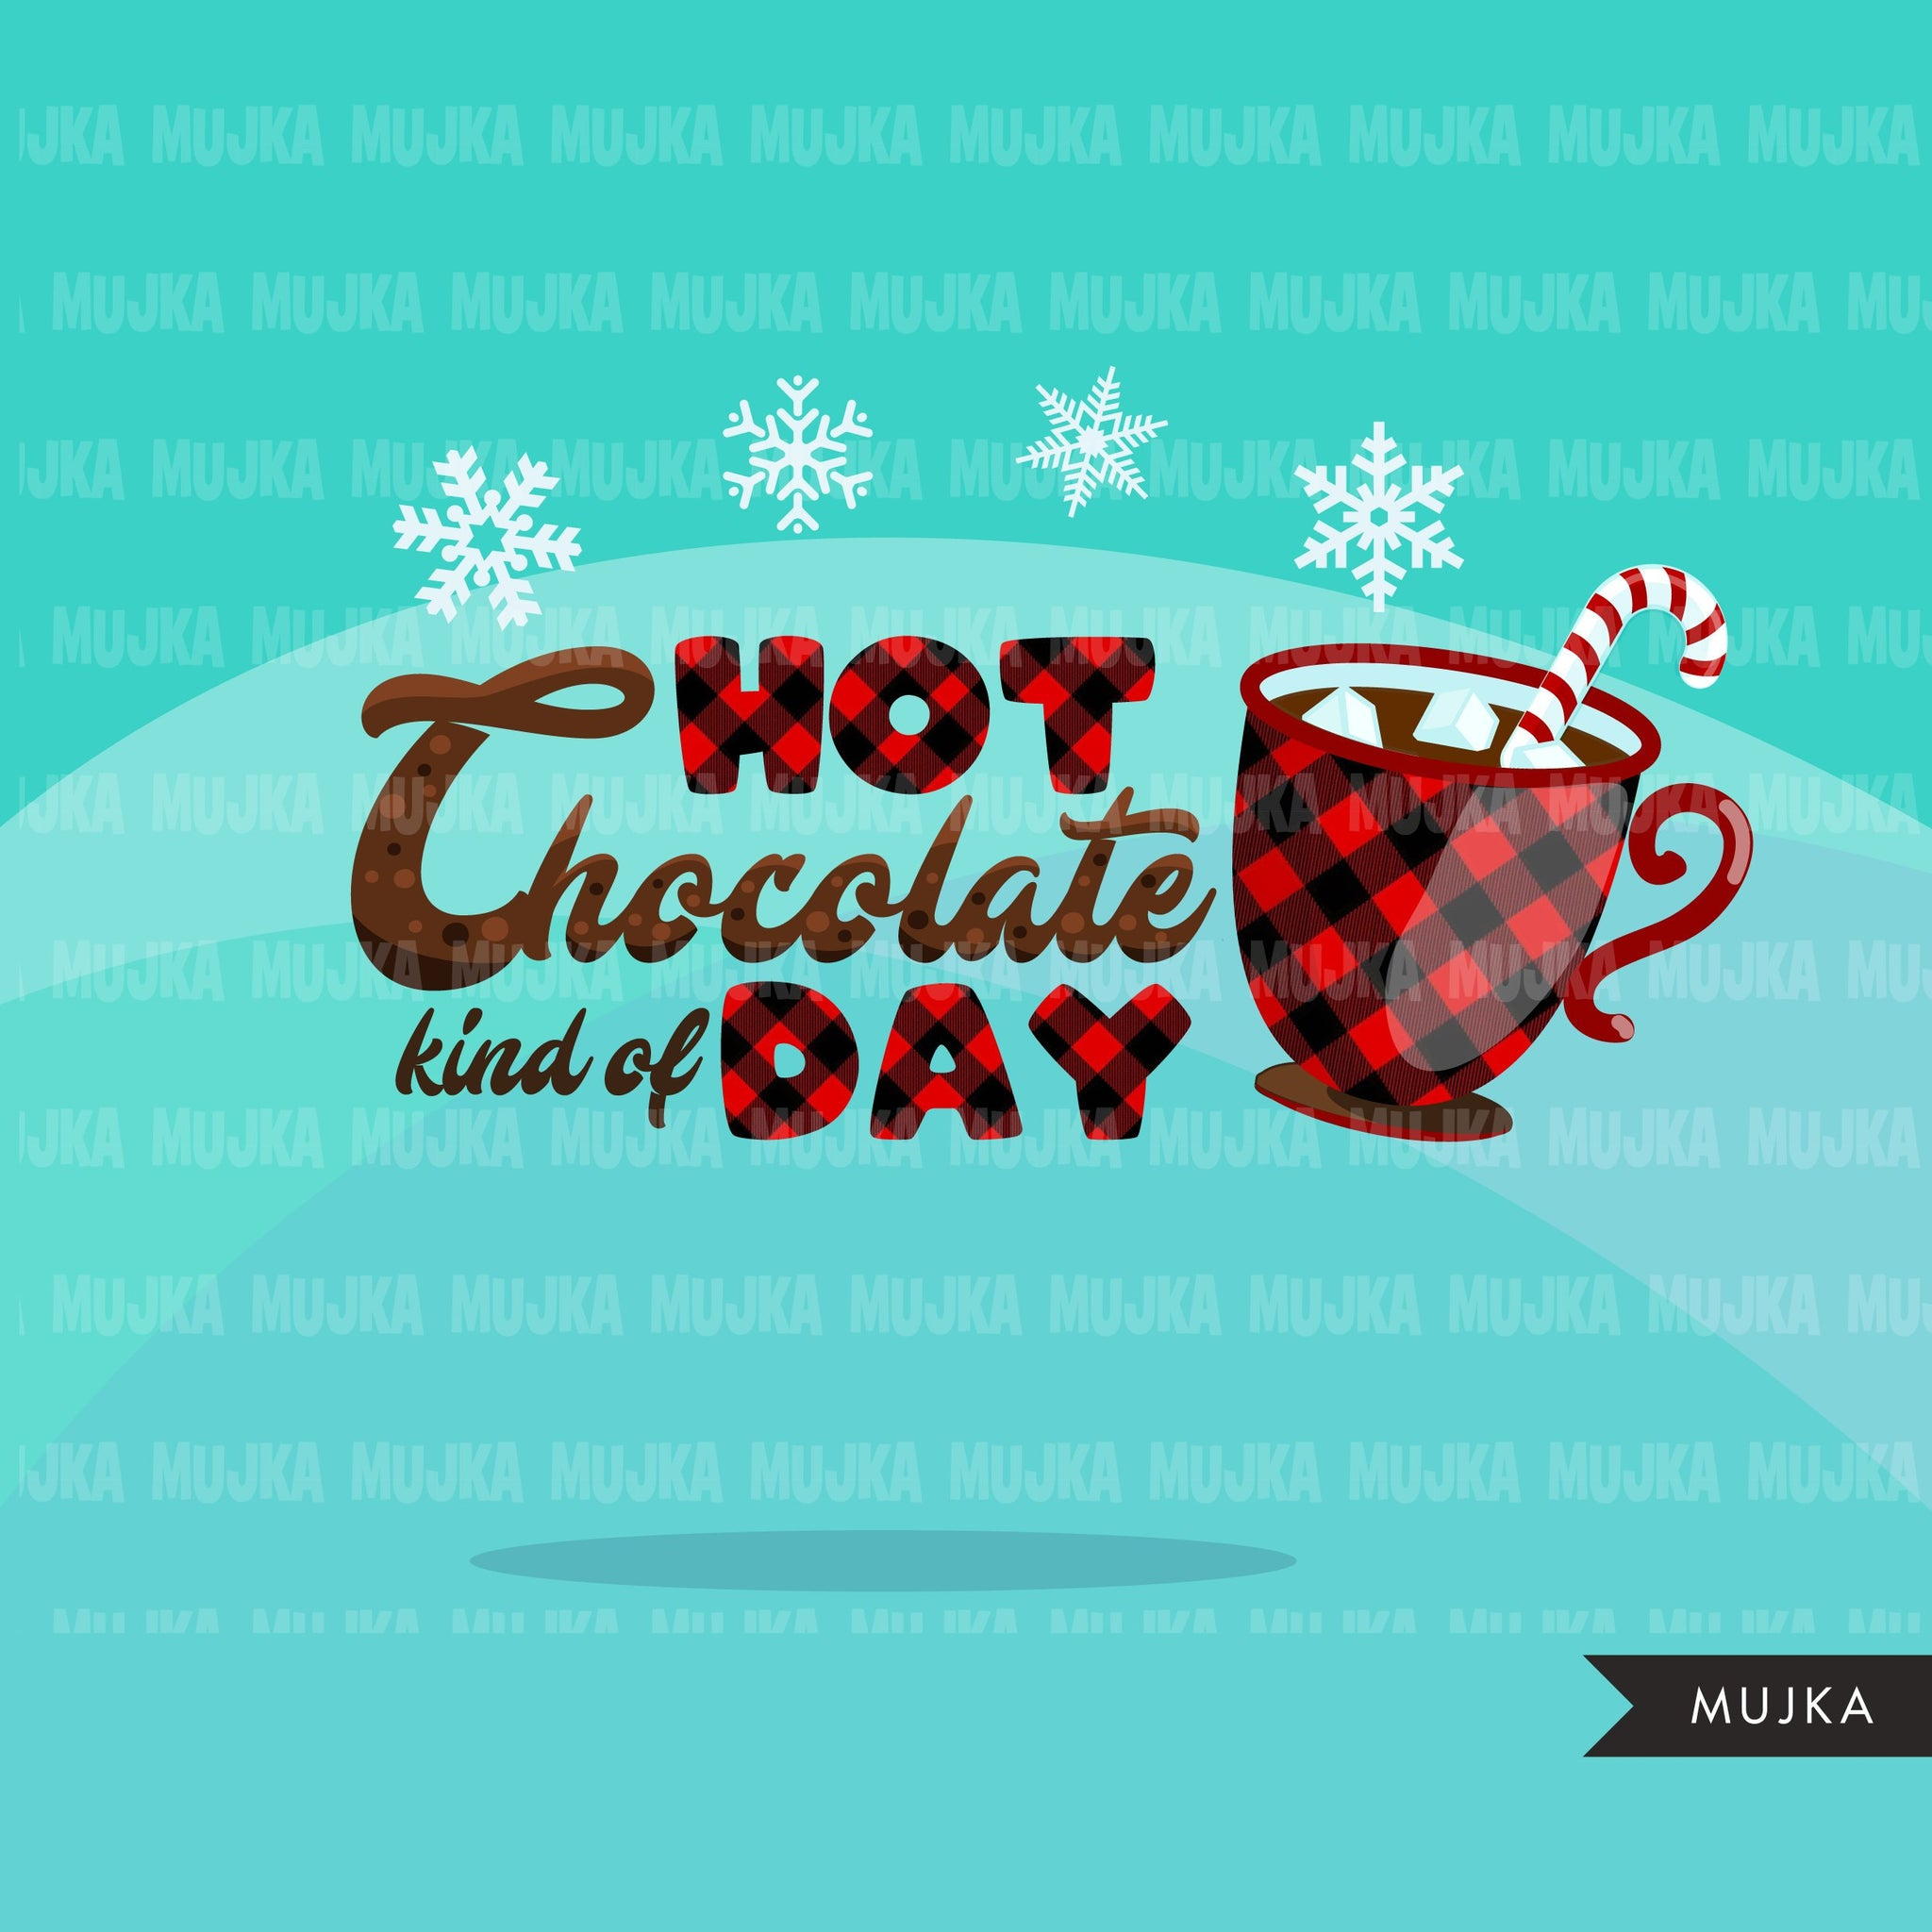 Hot chocolate Clipart, marshmallow cinnamon kind of day, snowflakes, plaid Christmas clip art graphics